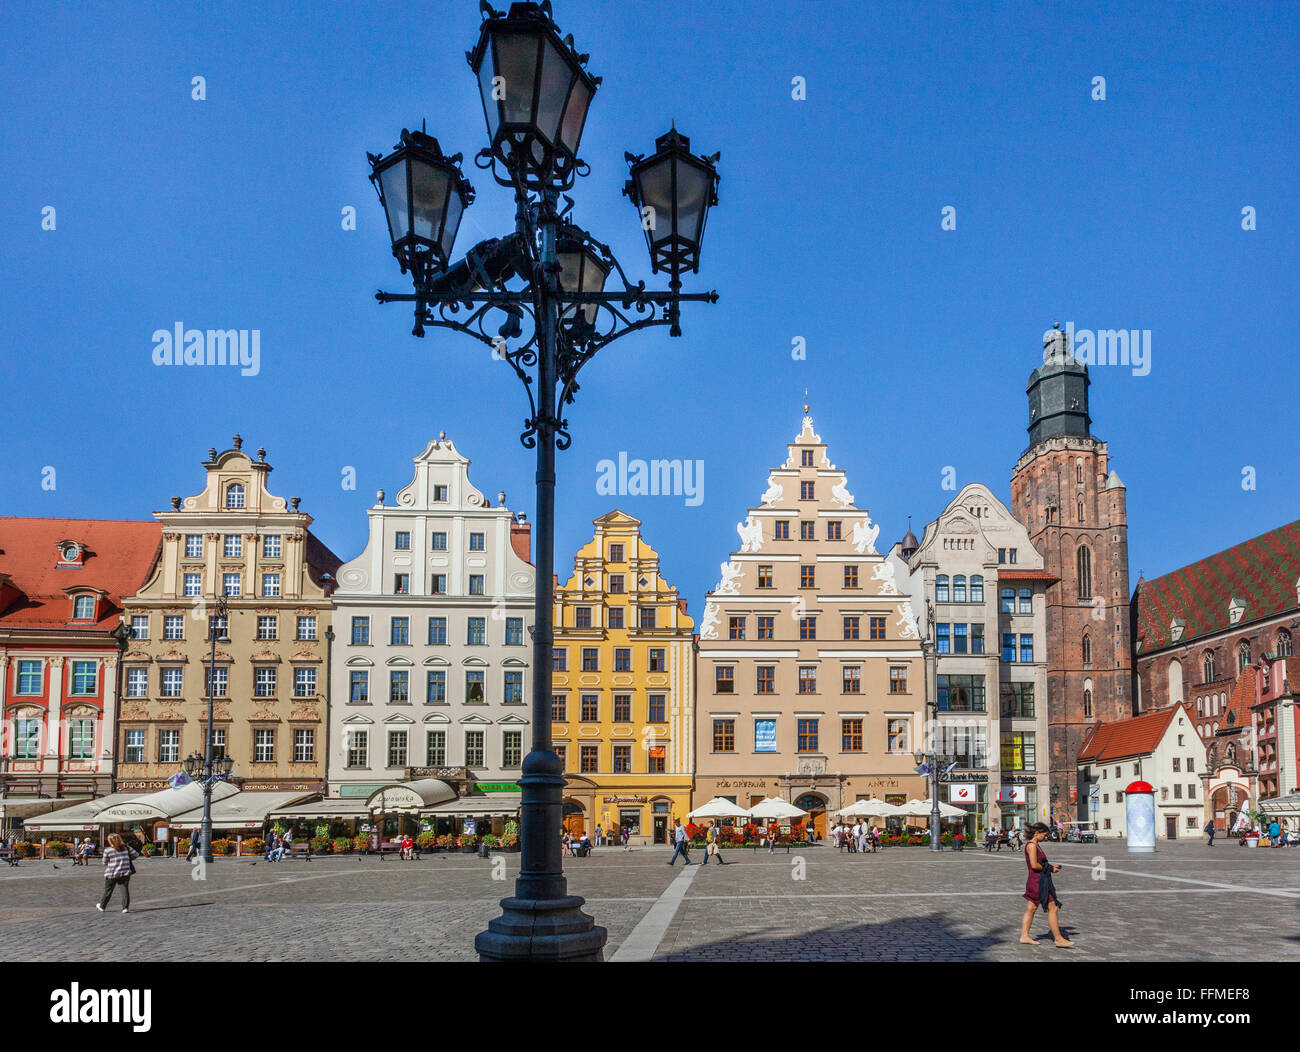 Poland, Lower Silesia, Wroclaw (Breslau), patrician houses at Wroclaw Market Square pedestrian zone and St. Elisabeth's - Stock Image